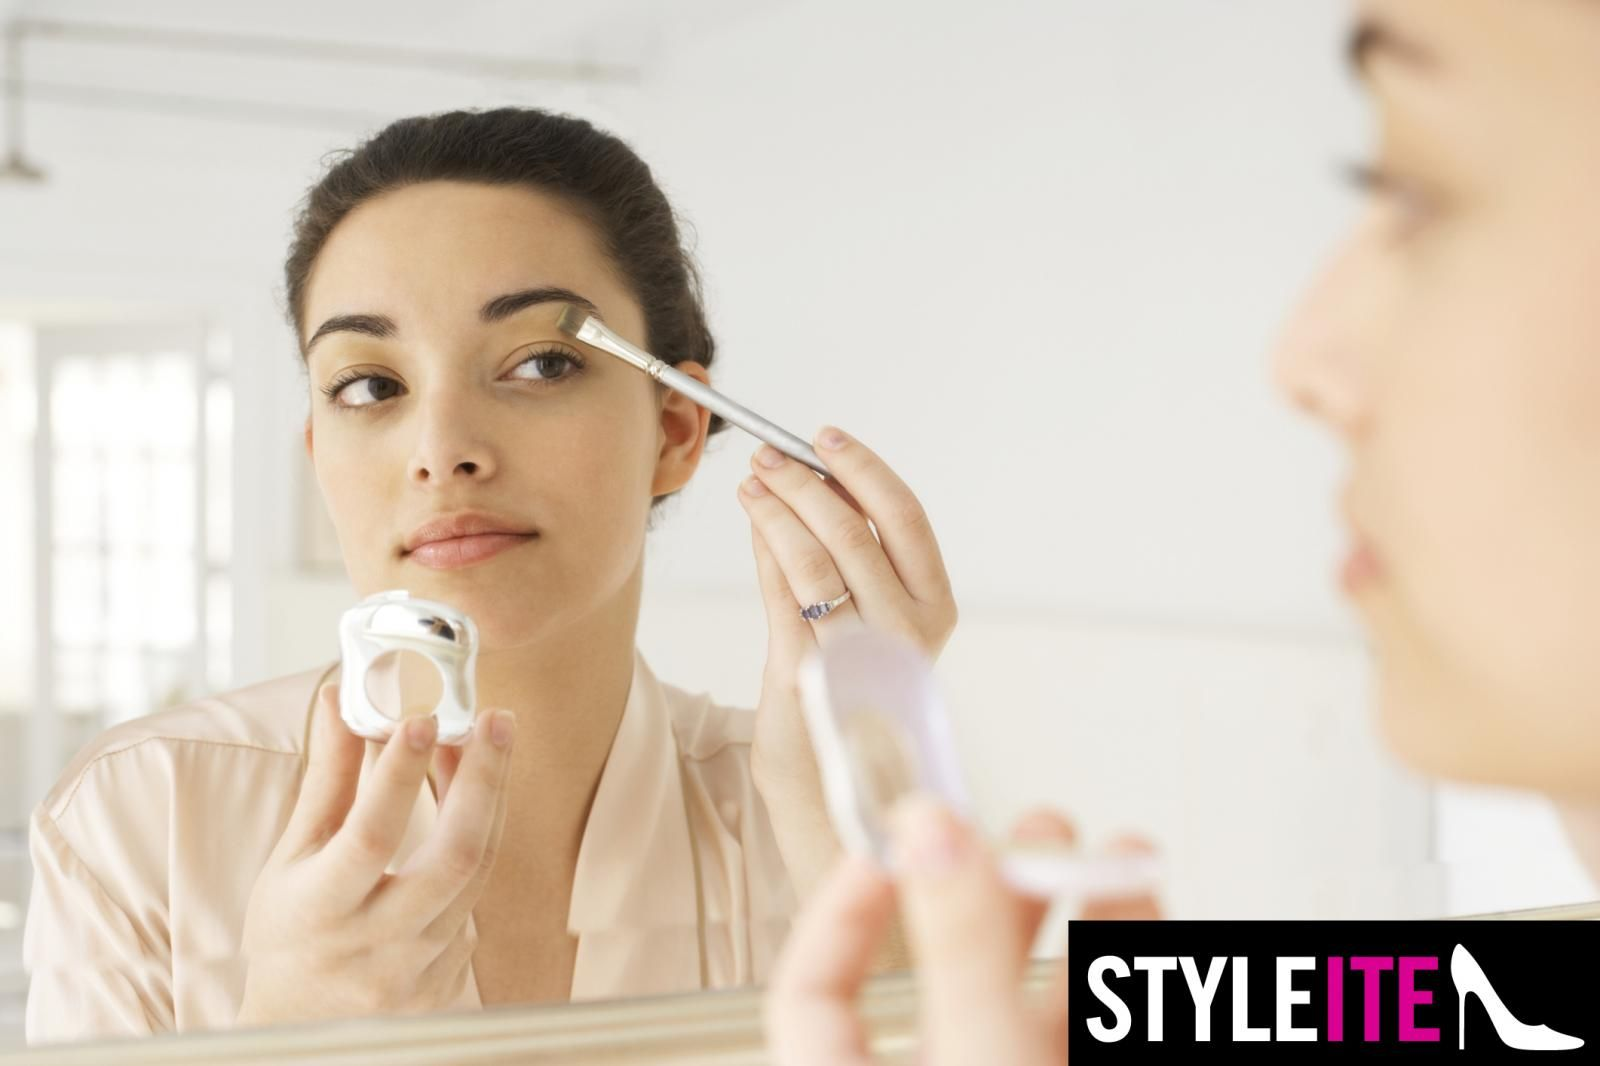 The 5-Minute Face: A Busy Girl's Guide To Makeup